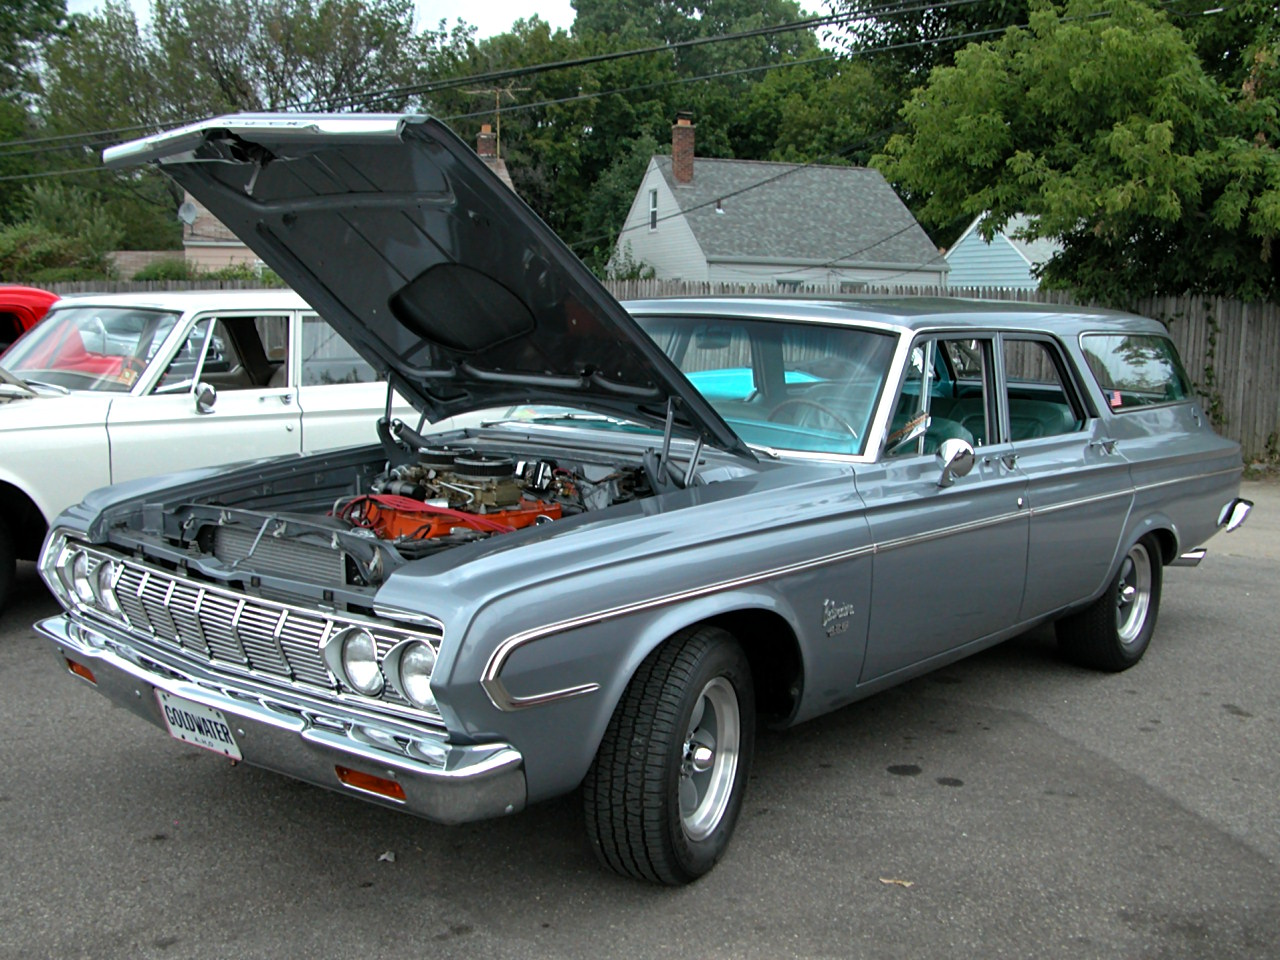 1964 Plymouth Belvedere Station Wagon W Modified 426 Short Ram Hemi Silver Gray Poly Fvl 2005 Dream Cruise N